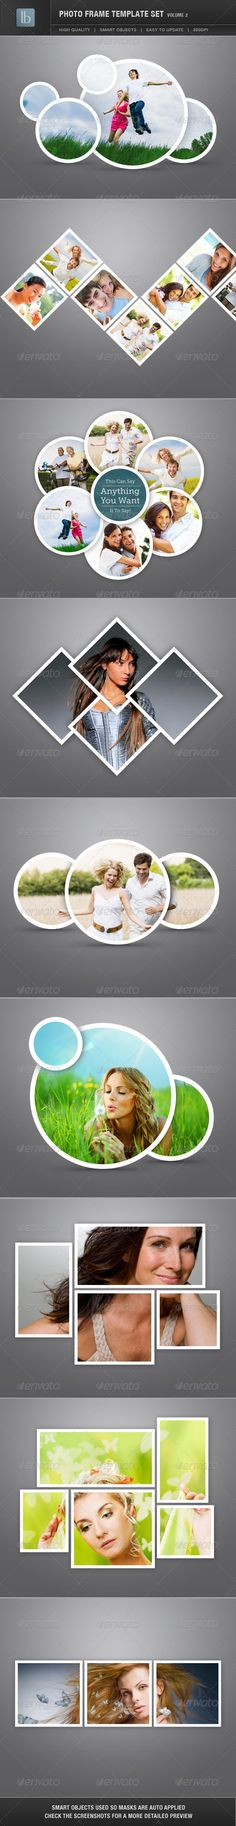 Photo Frame Template Set | Vol 2  http://graphicriver.net/item/photo-frame-template-set-vol-2/1724109?WT.ac=search_thumb_1=search_thumb_author=lbeck